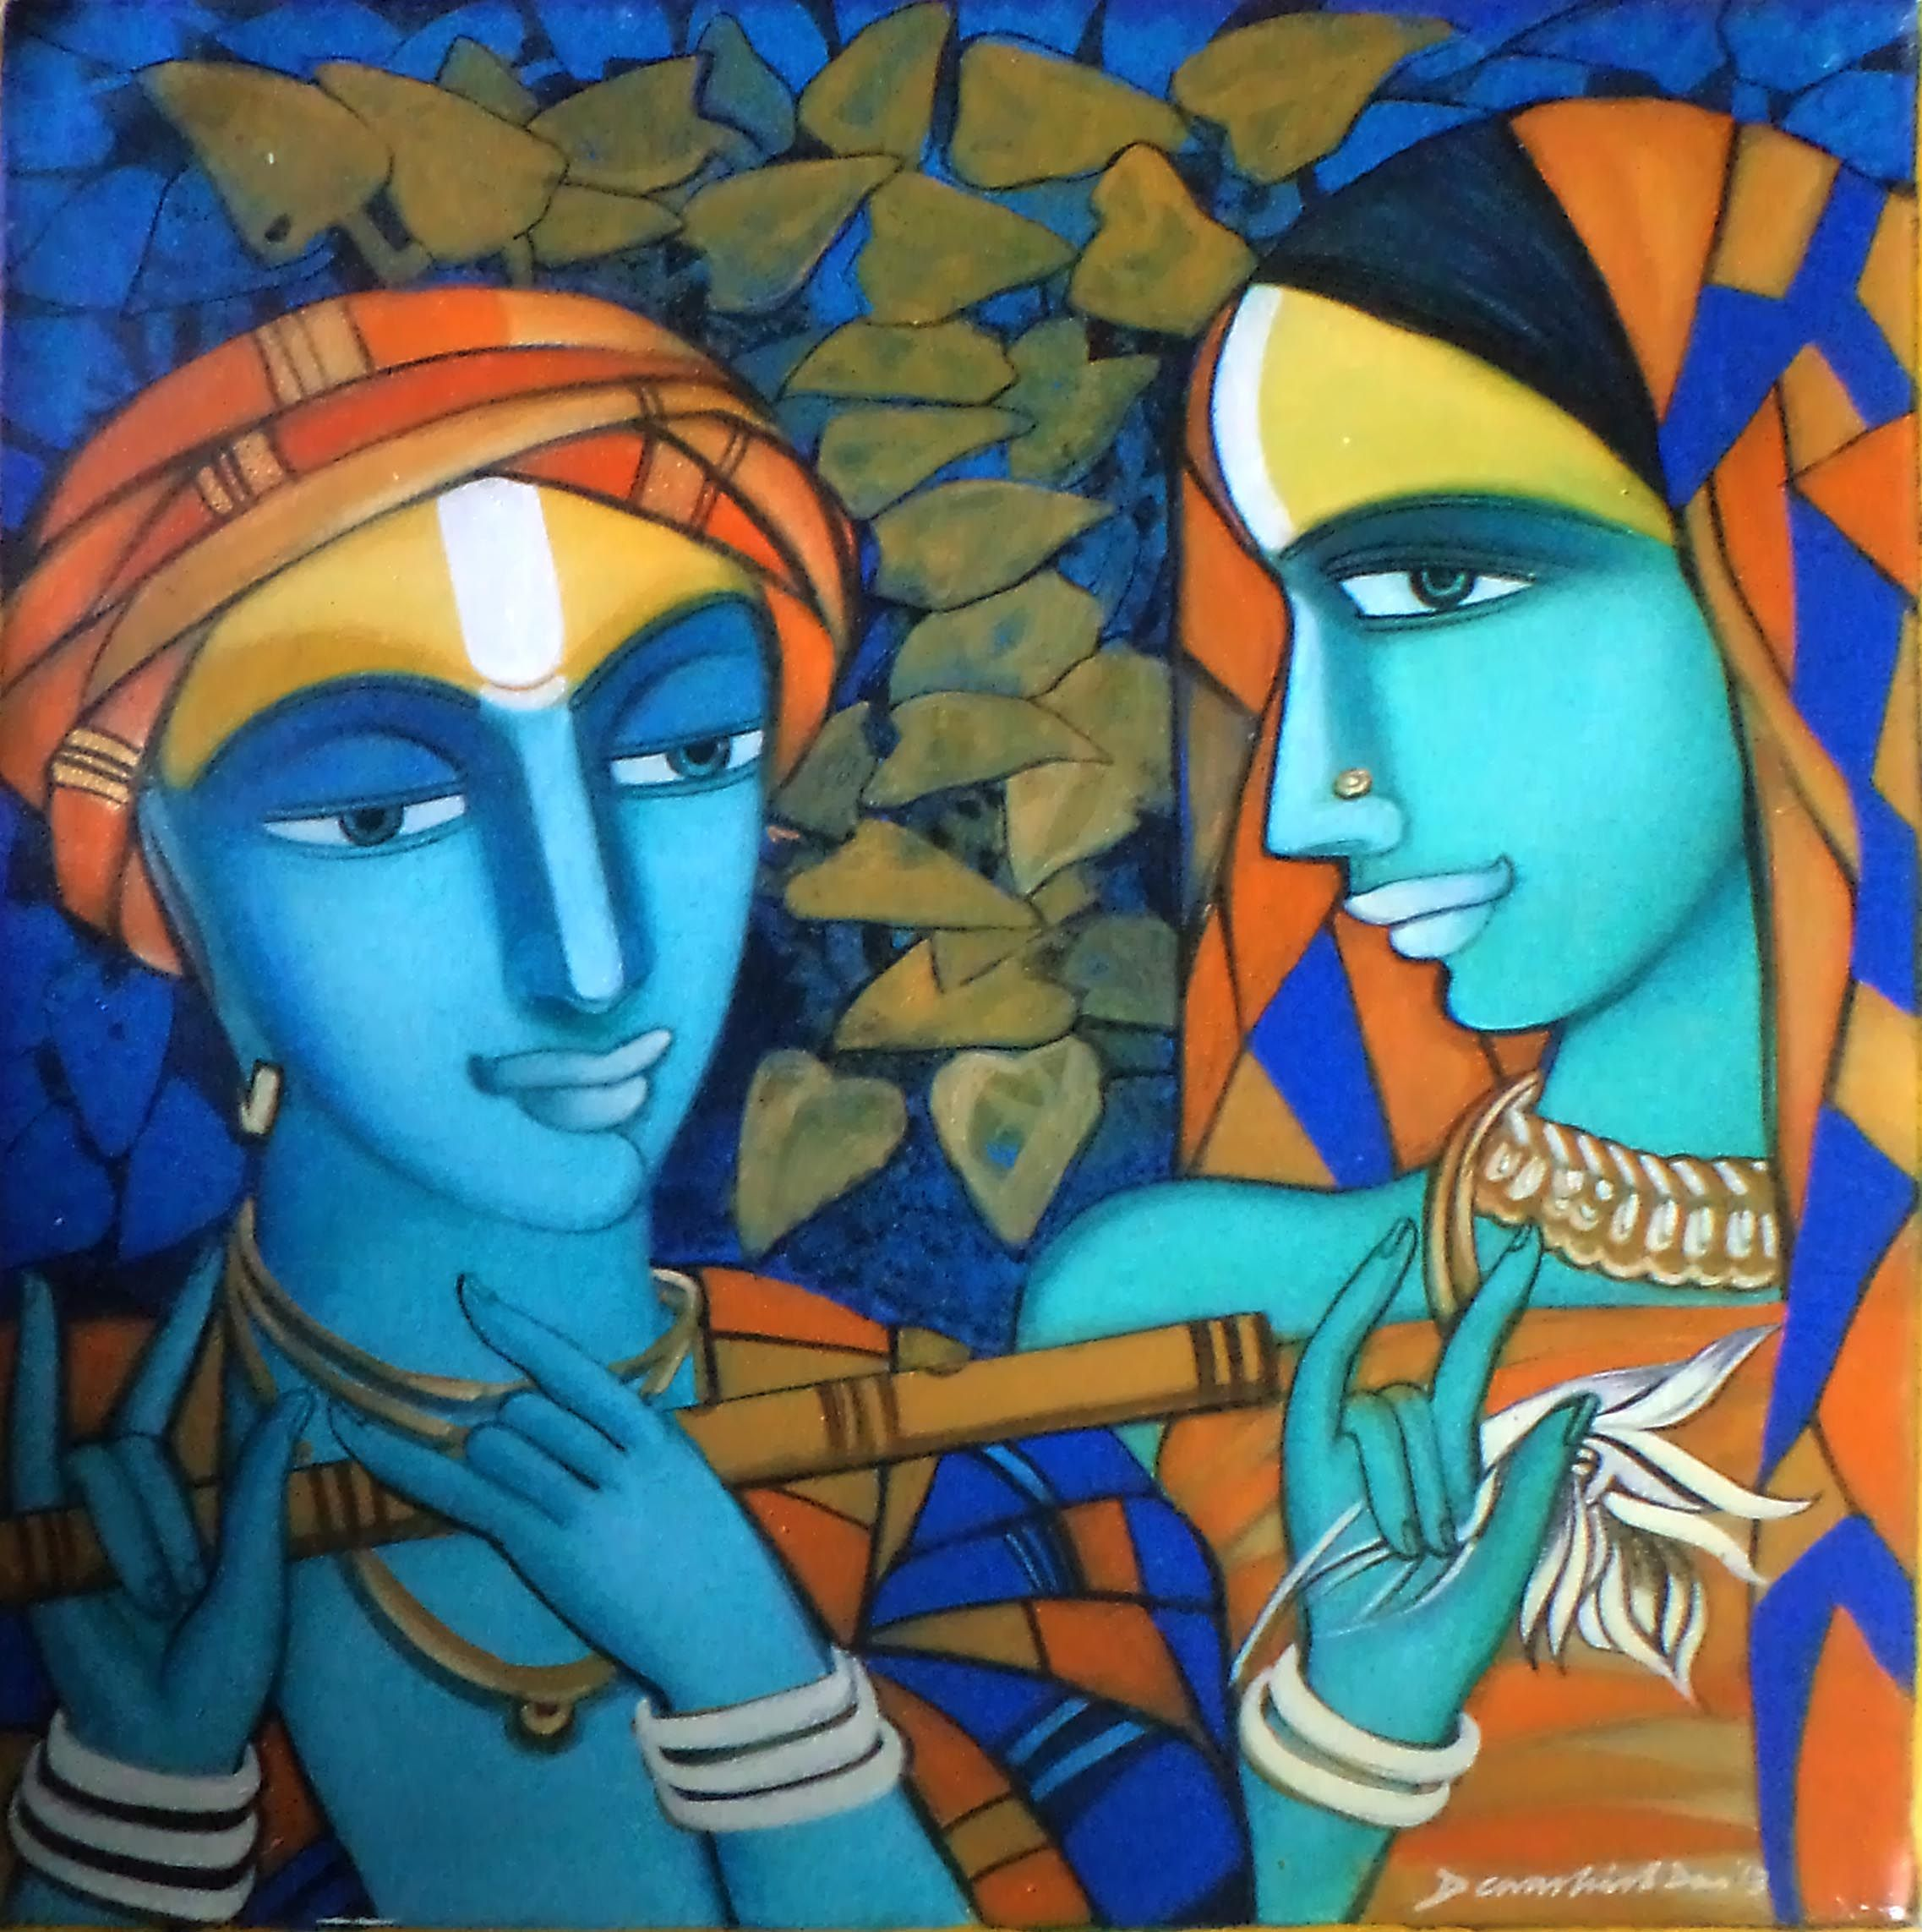 This amazing Acrylic on canvas painting    Composition    is made by the     This amazing Acrylic on canvas painting    Composition    is made by the  renowned Indian artist    Dewashish Das   You can get his art work online at  Indian Art